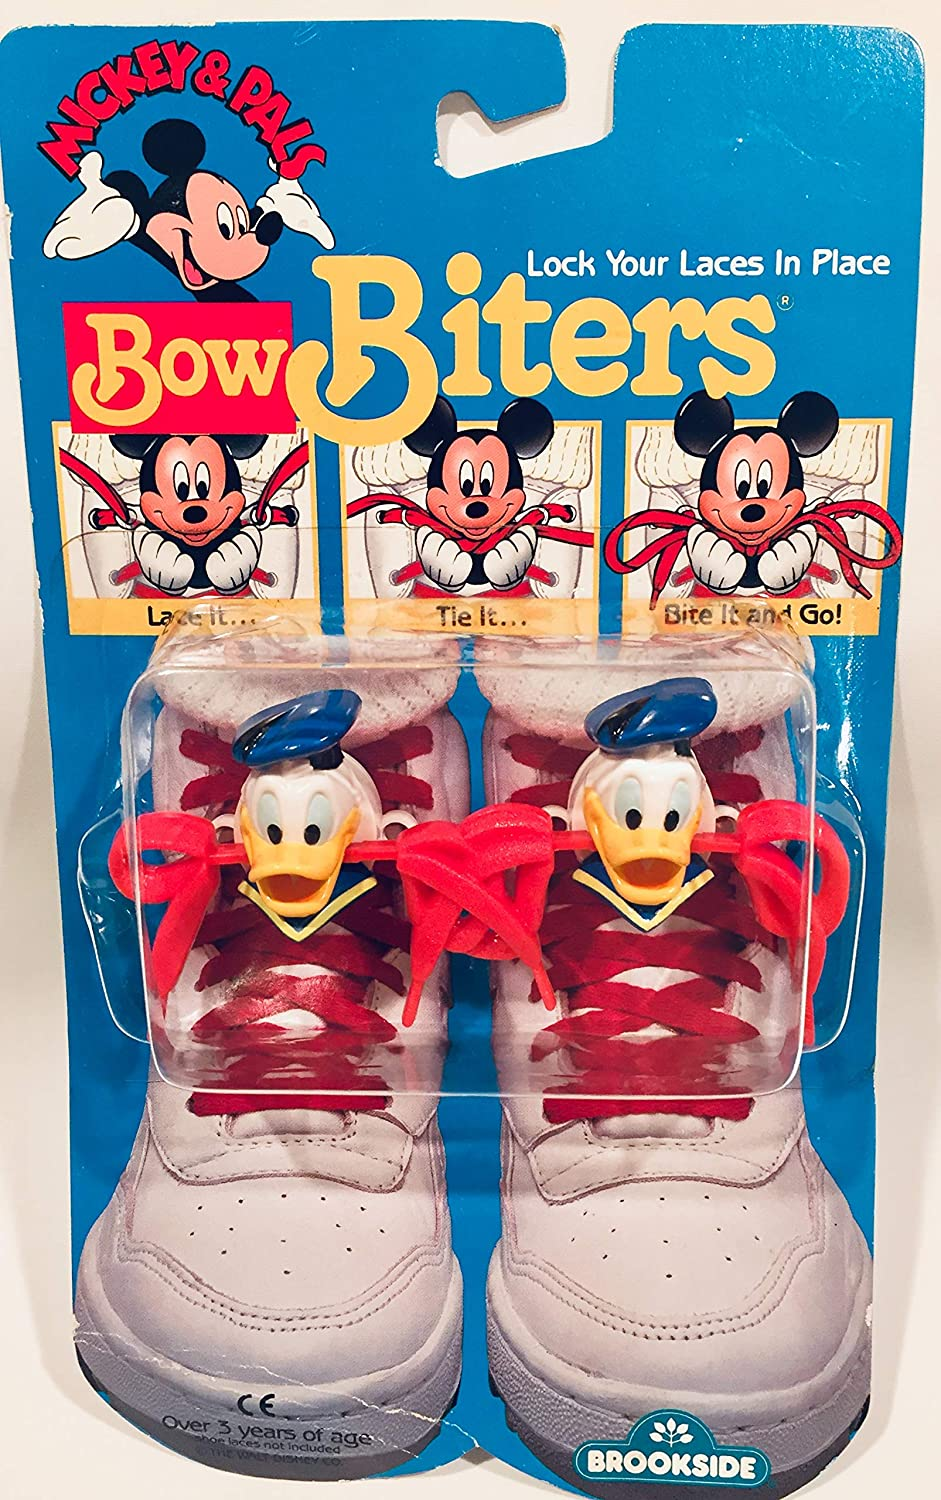 Mickey's Stuff for Kids BowBiters 1989 Donald Duck Lace Locker by Brookside